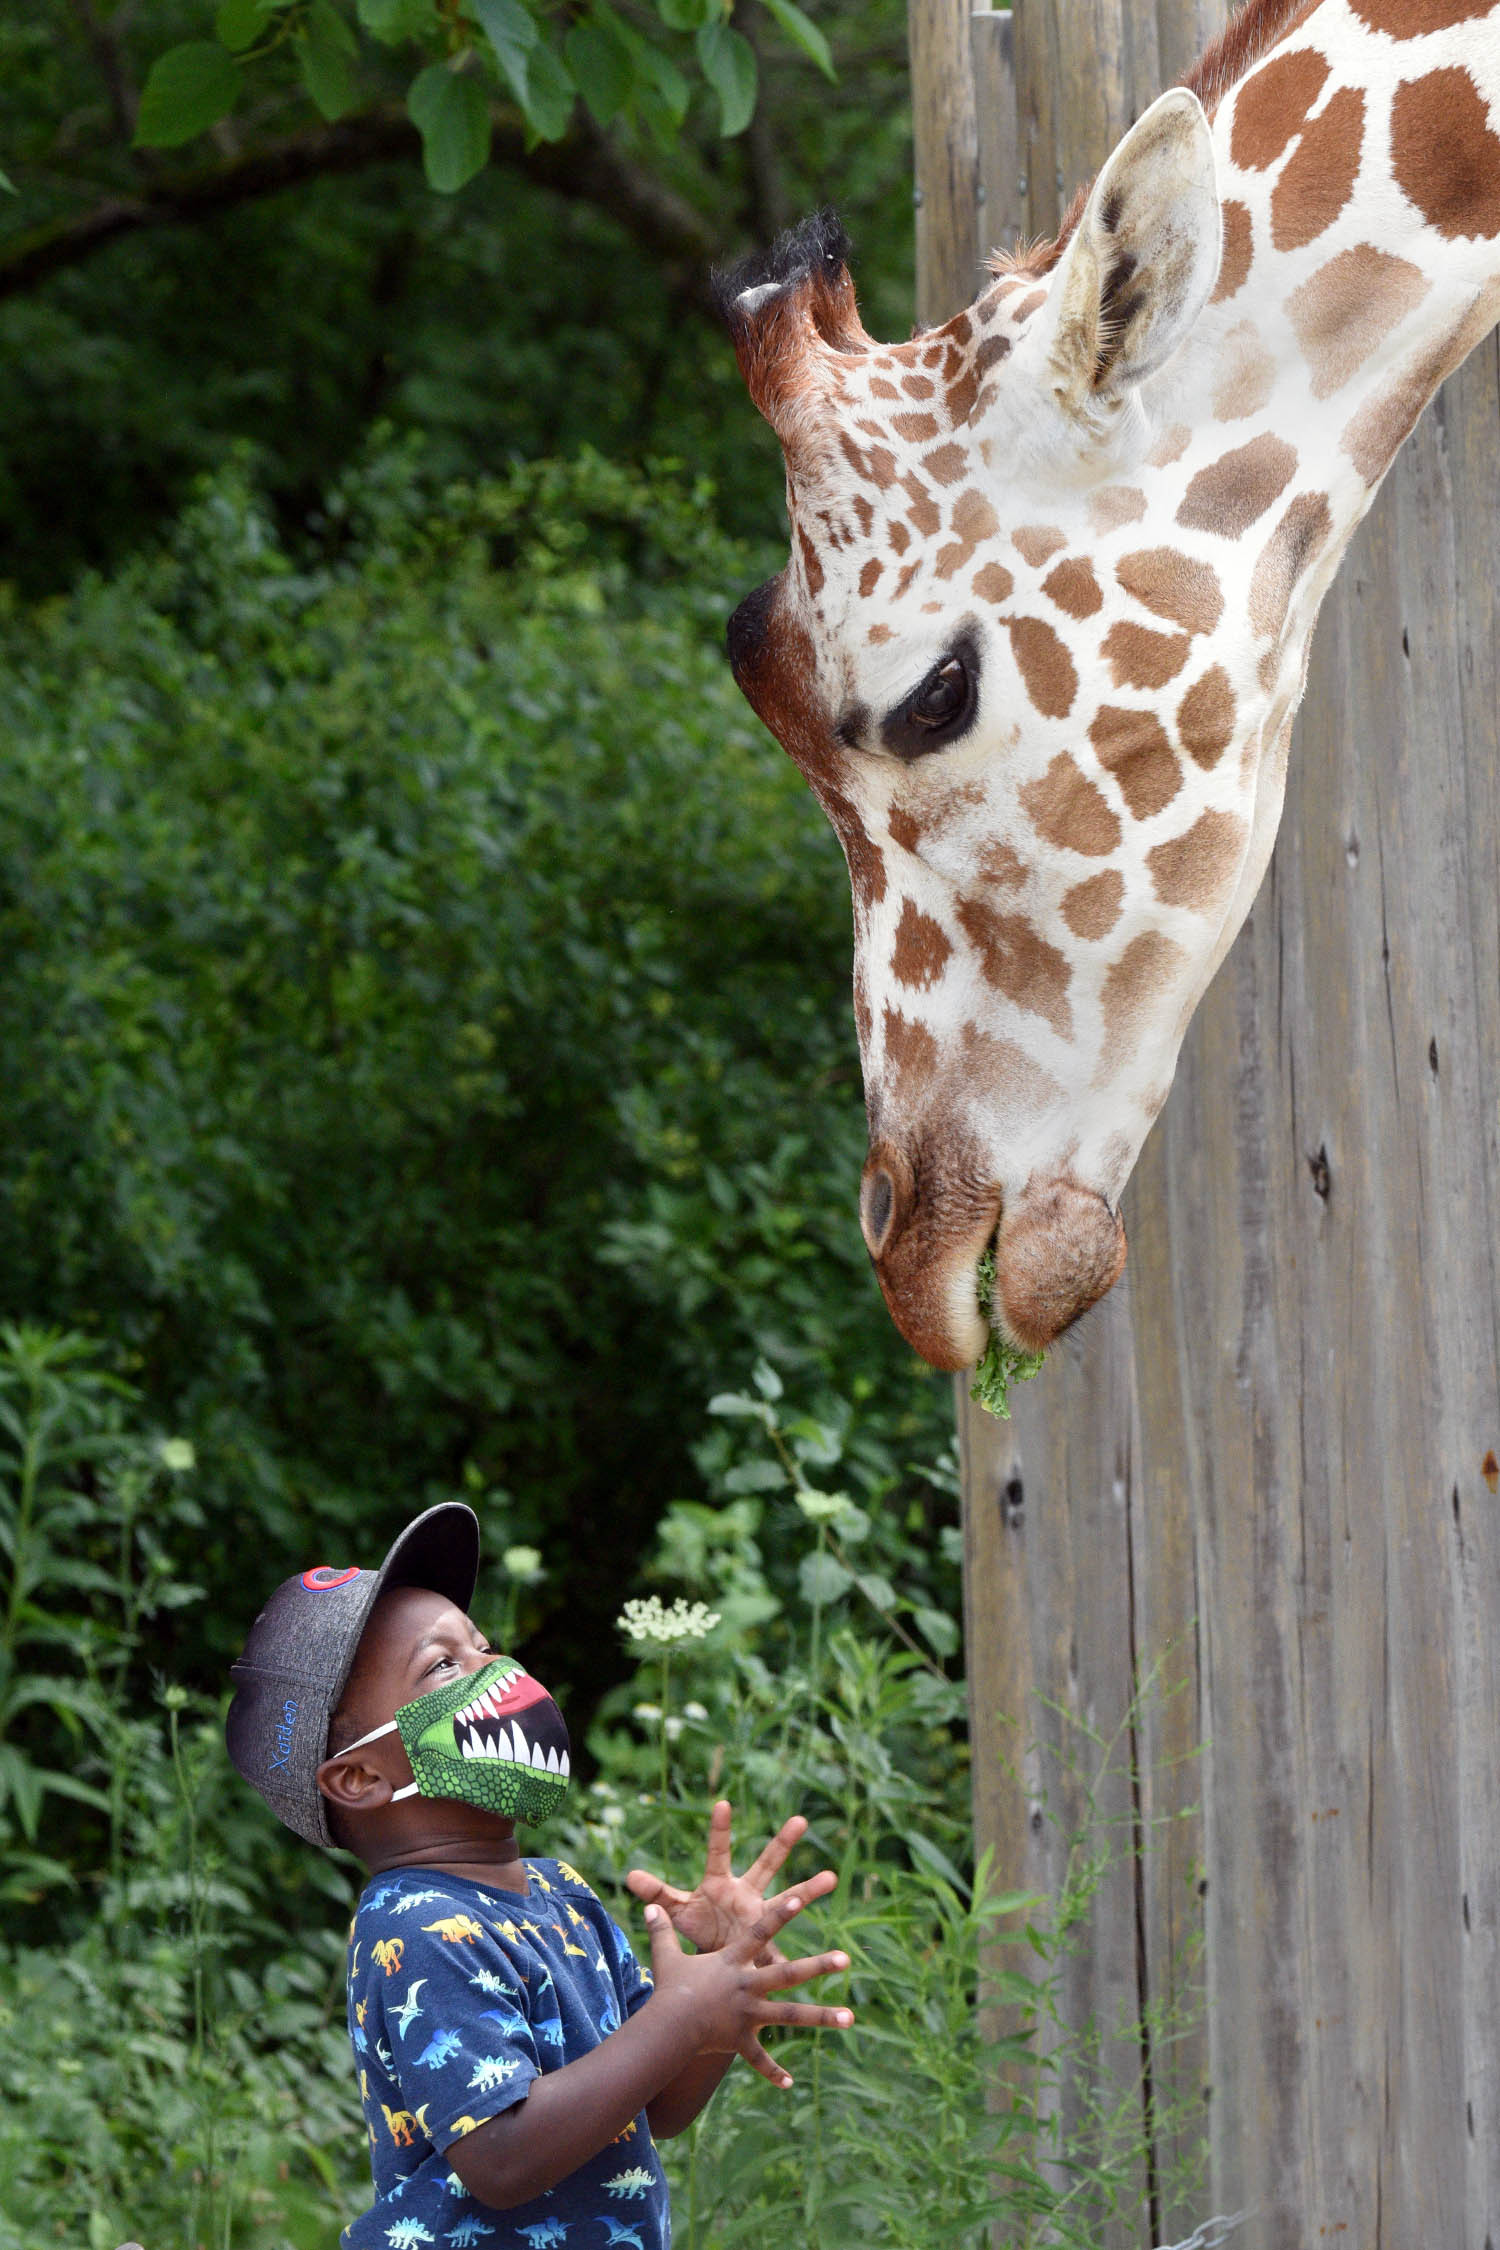 A giraffe leans over a fence and eats leaves from a child